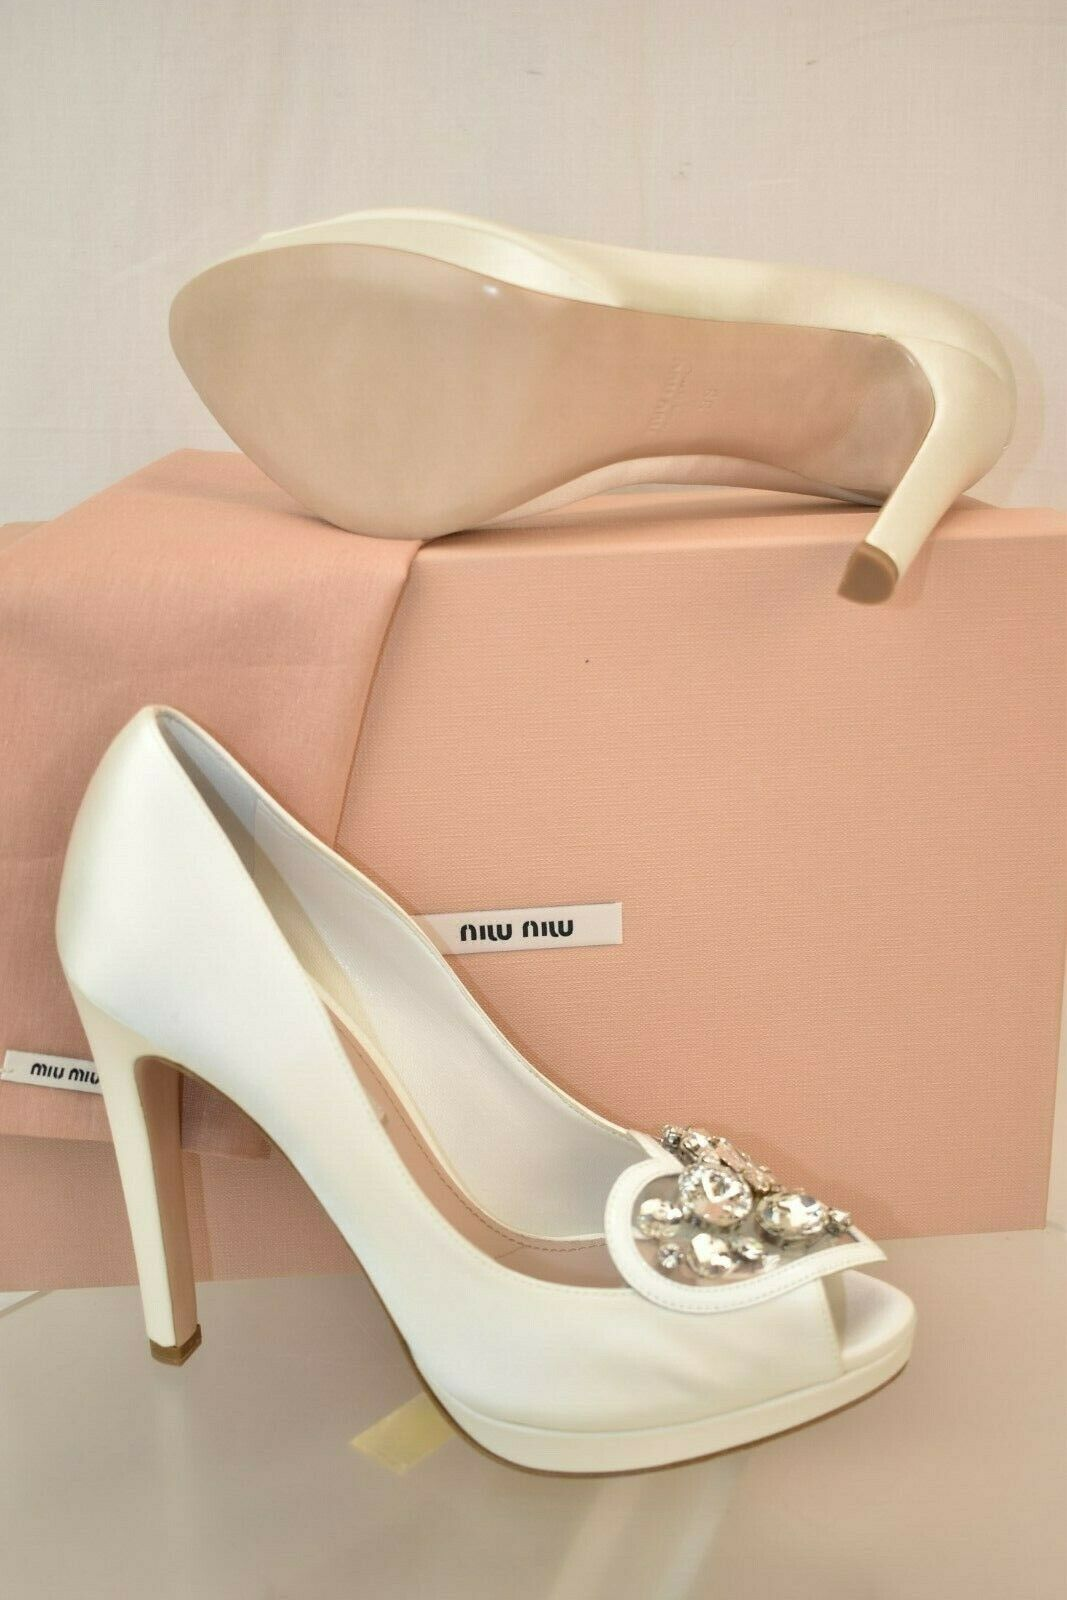 MIU MIU PRADA WHITE SATIN SATIN SATIN JEWELED CRYSTALS PLATFORM PEEP TOE WEDDING PUMPS 40 2c423a